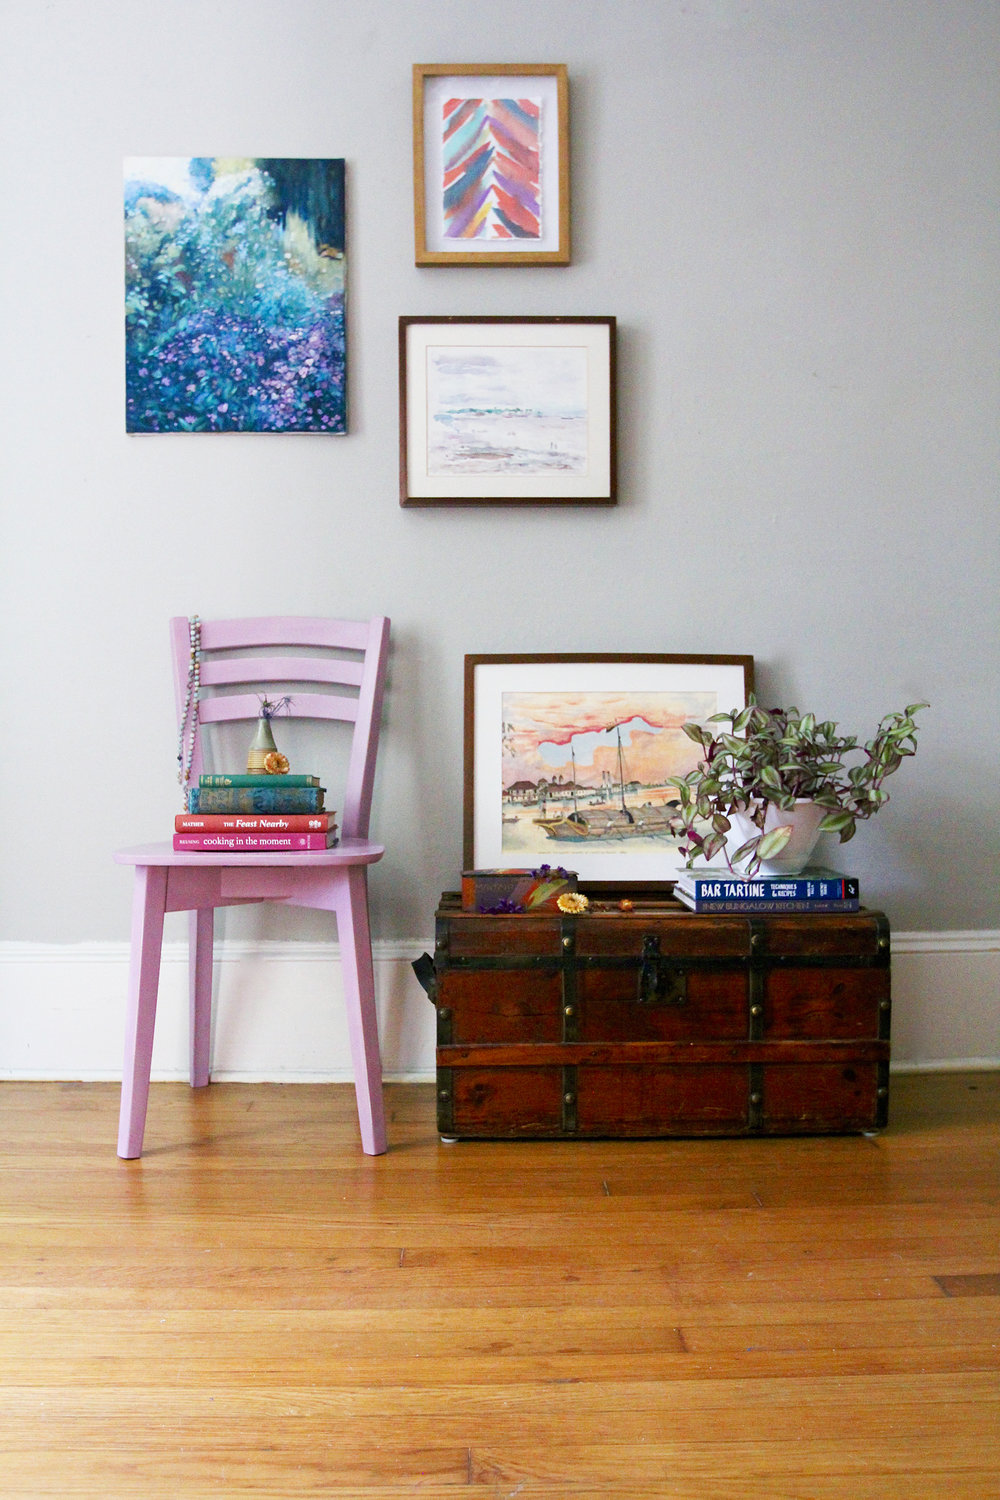 jo-torrijos-a-simpler-design-atlanta-painted-furniture-lilac-chair-annie-sloan-henrietta-1.jpg